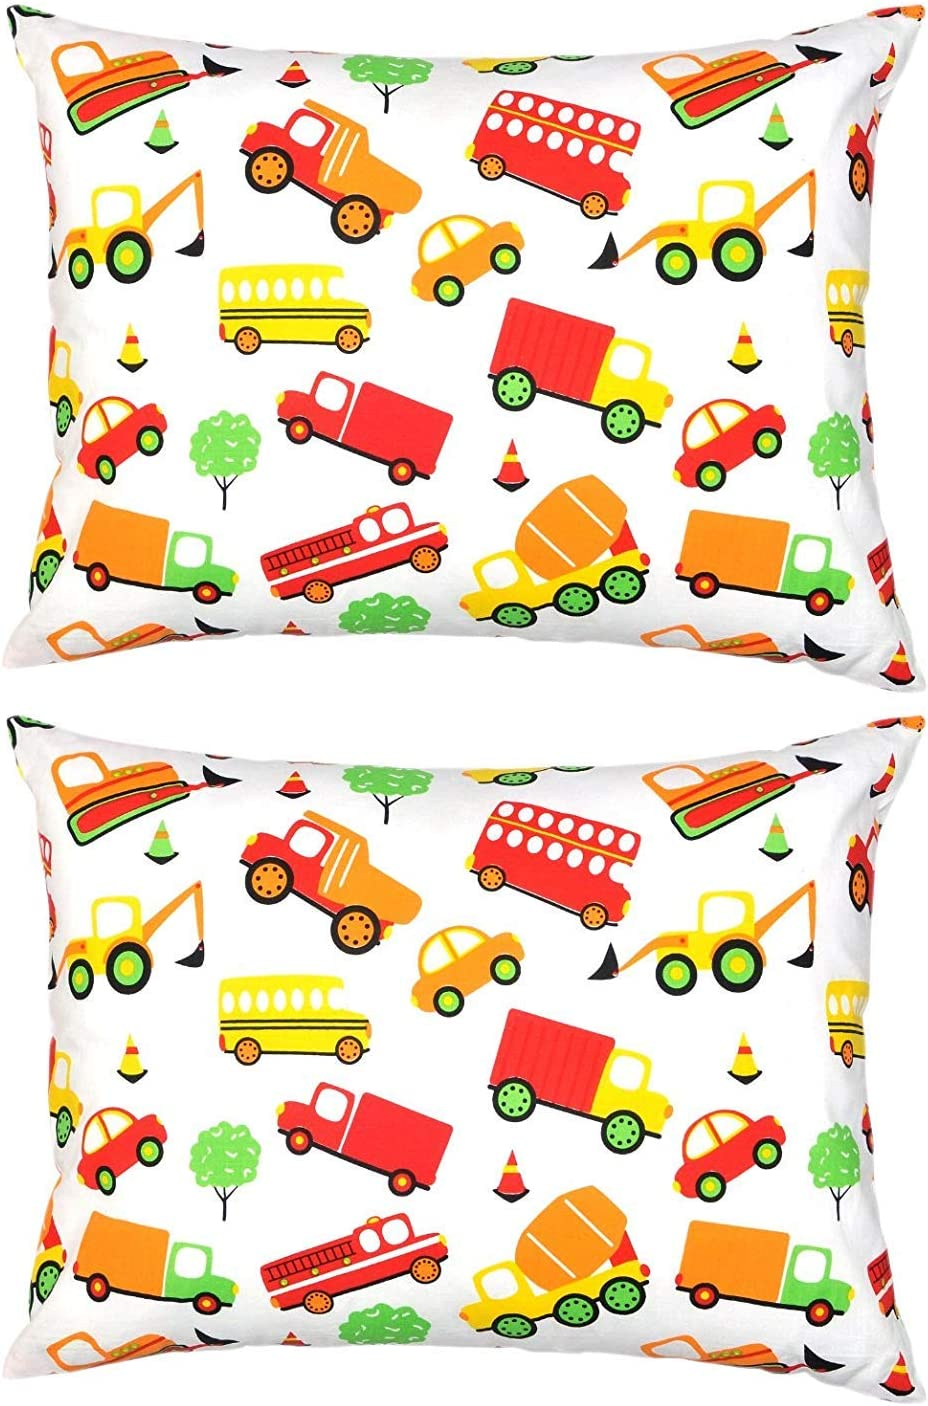 Cars and Boats 2 Pack Naturally Hypoallergenic YourEcoFamily Toddler Pillowcases 100/% Certified Organic Cotton Soft Comfy